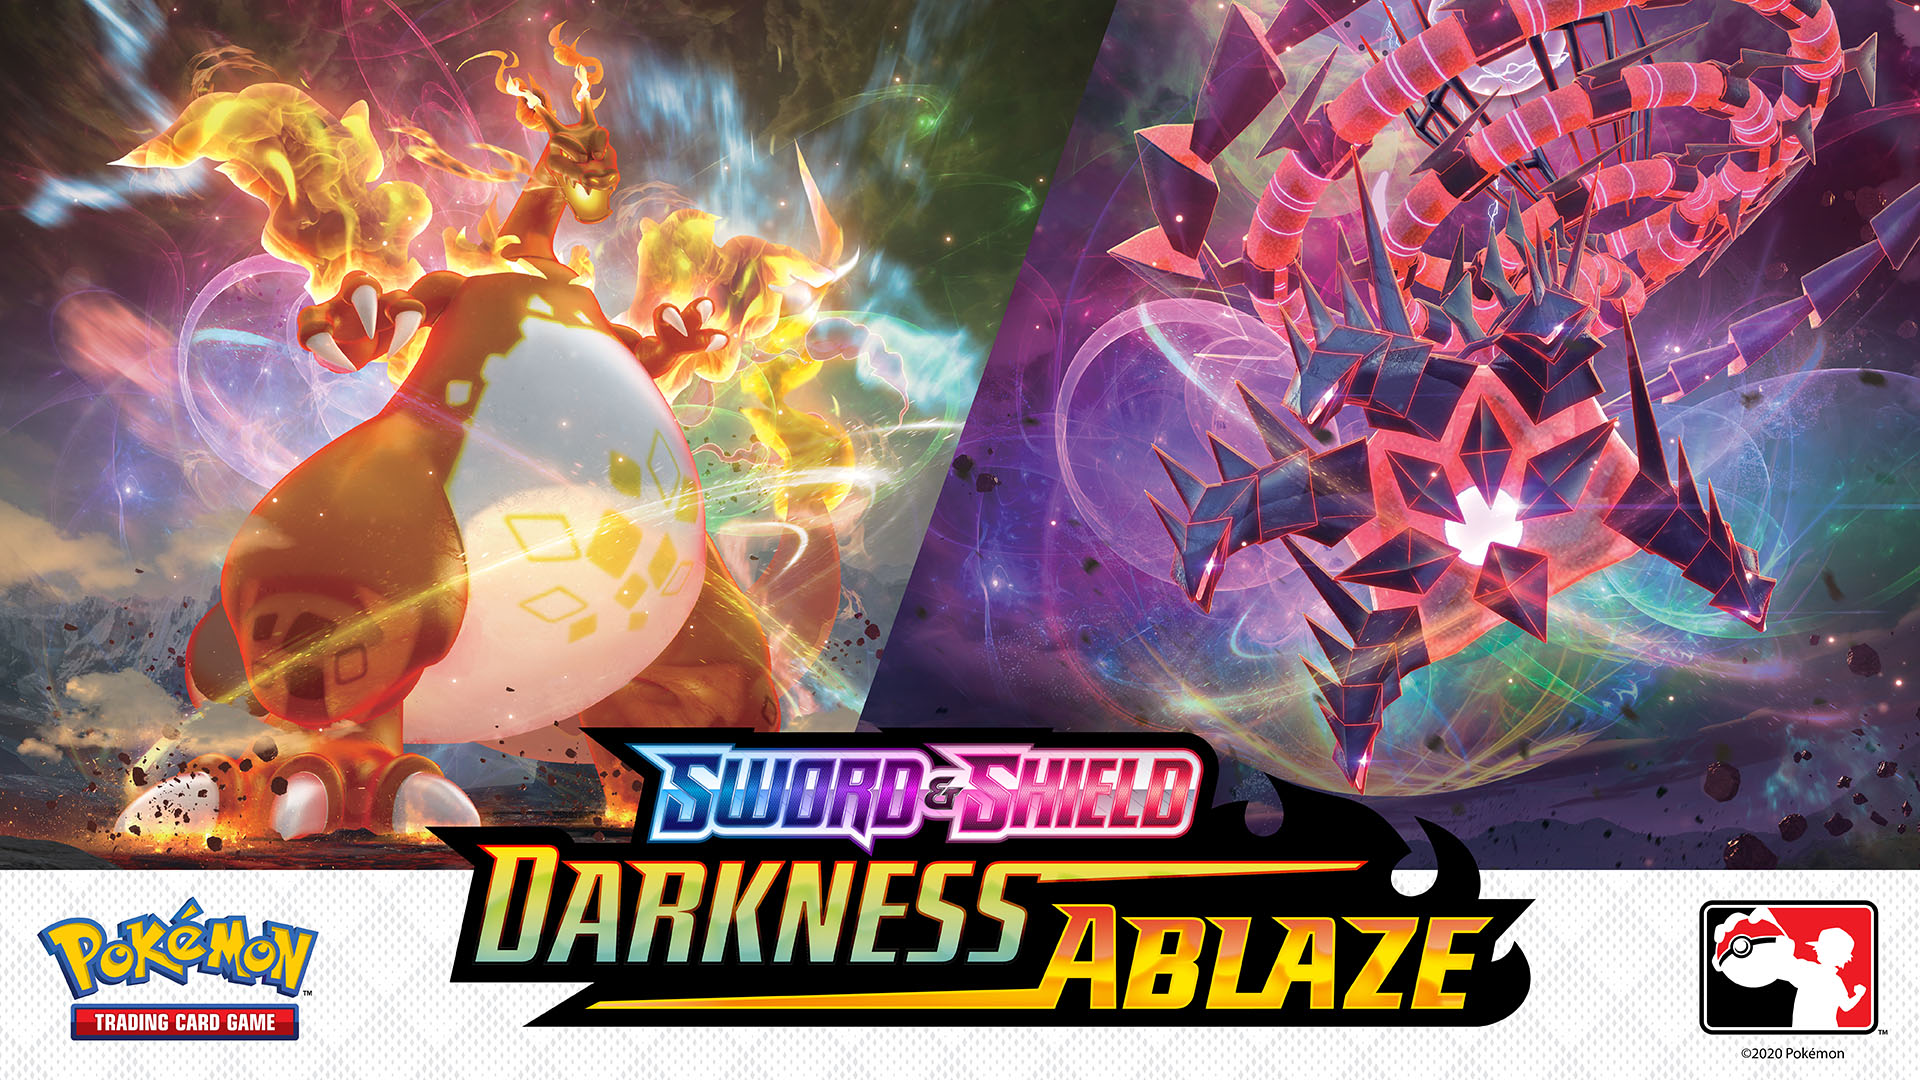 Pokemon Darkness Ablaze Build Battle Prerelease Boxes Are Now Available At The Wandering Dragon Wandering Dragon Game Puzzle Shoppe Illinois Largest Board Game Puzzle Store